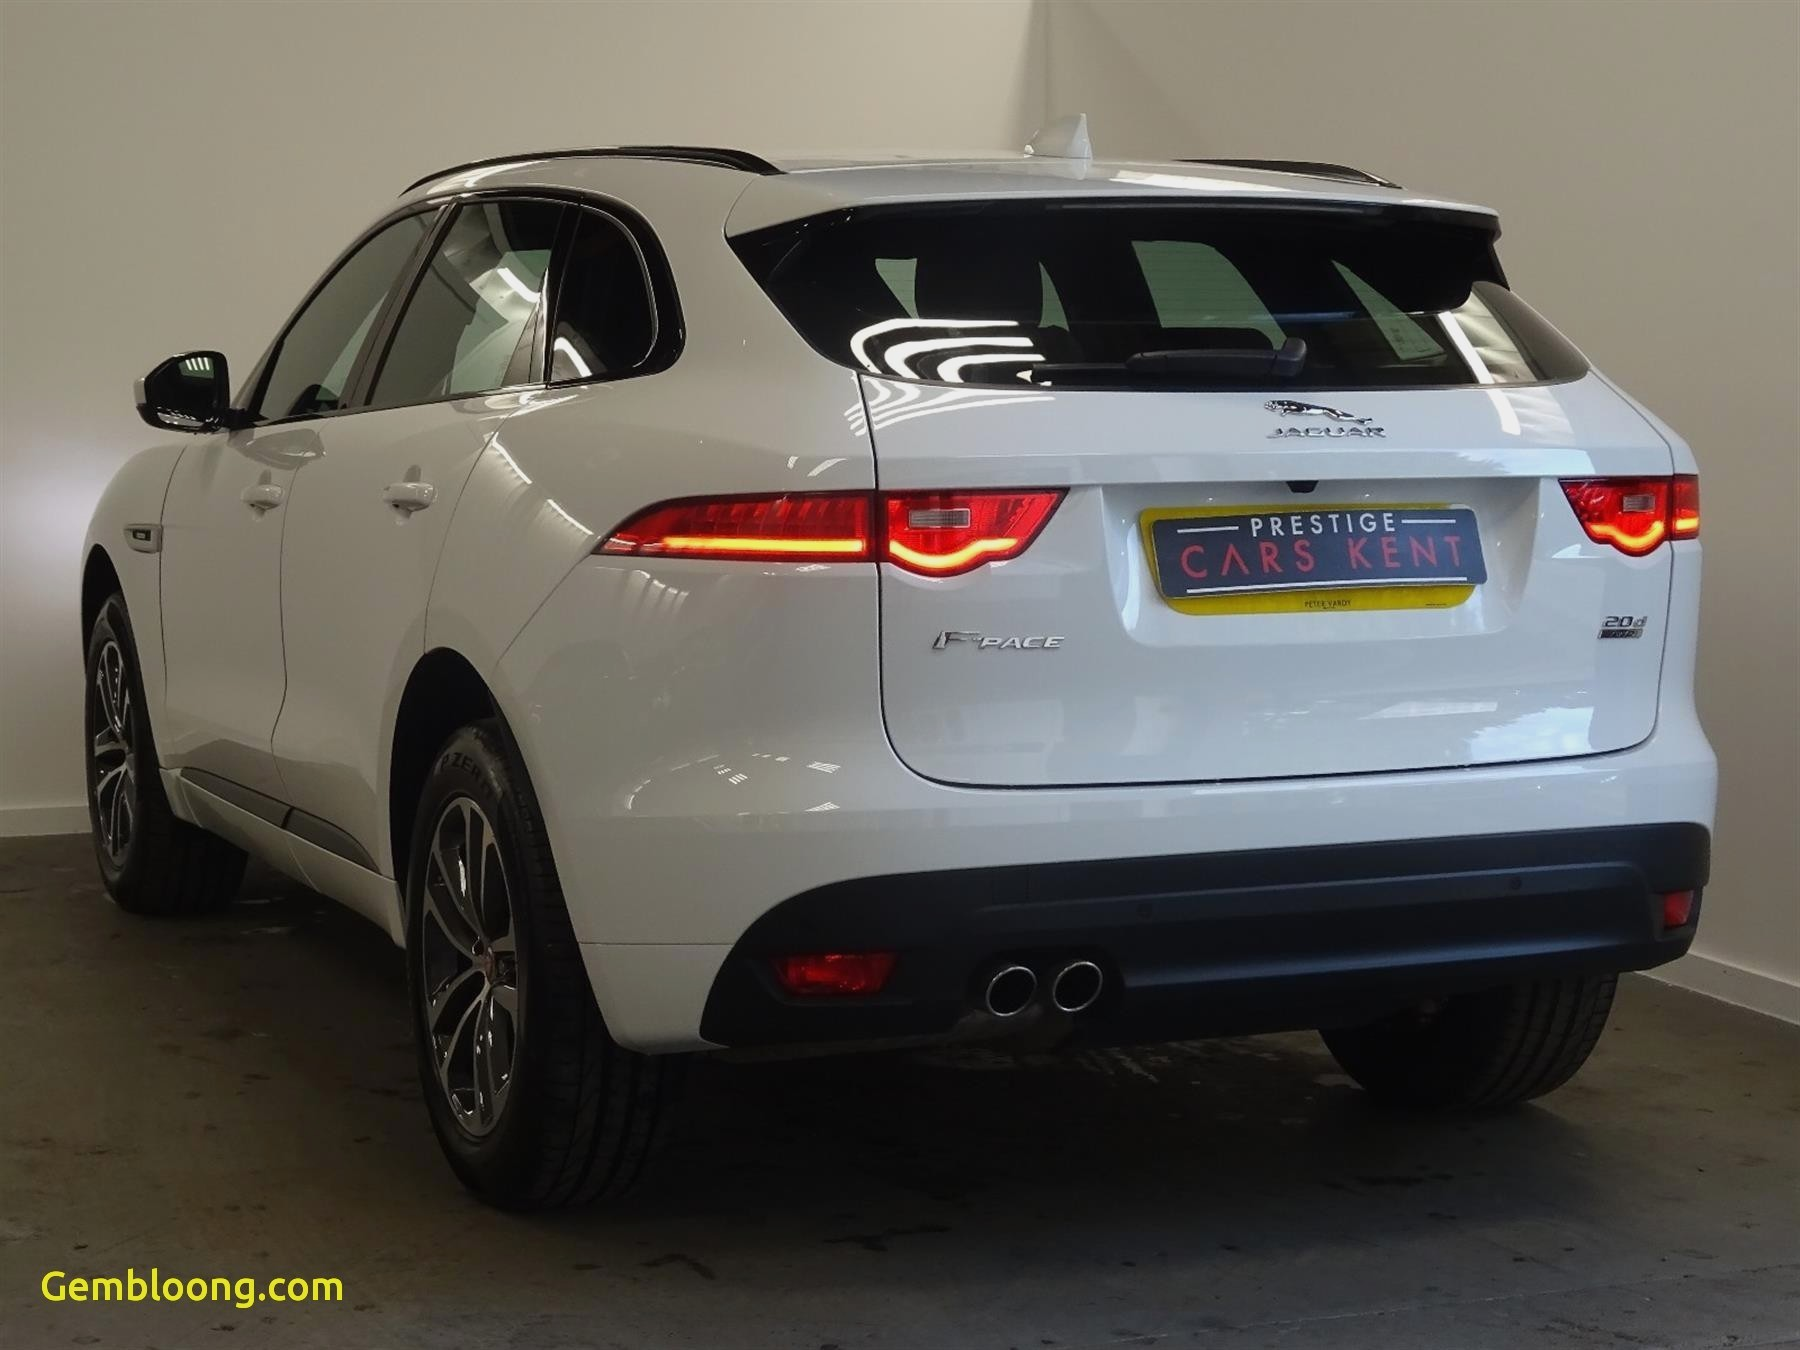 Used Awd Cars Lovely top Awd Cars Stunning Cars Near Me Olx Unique Cars for Sale Near Me